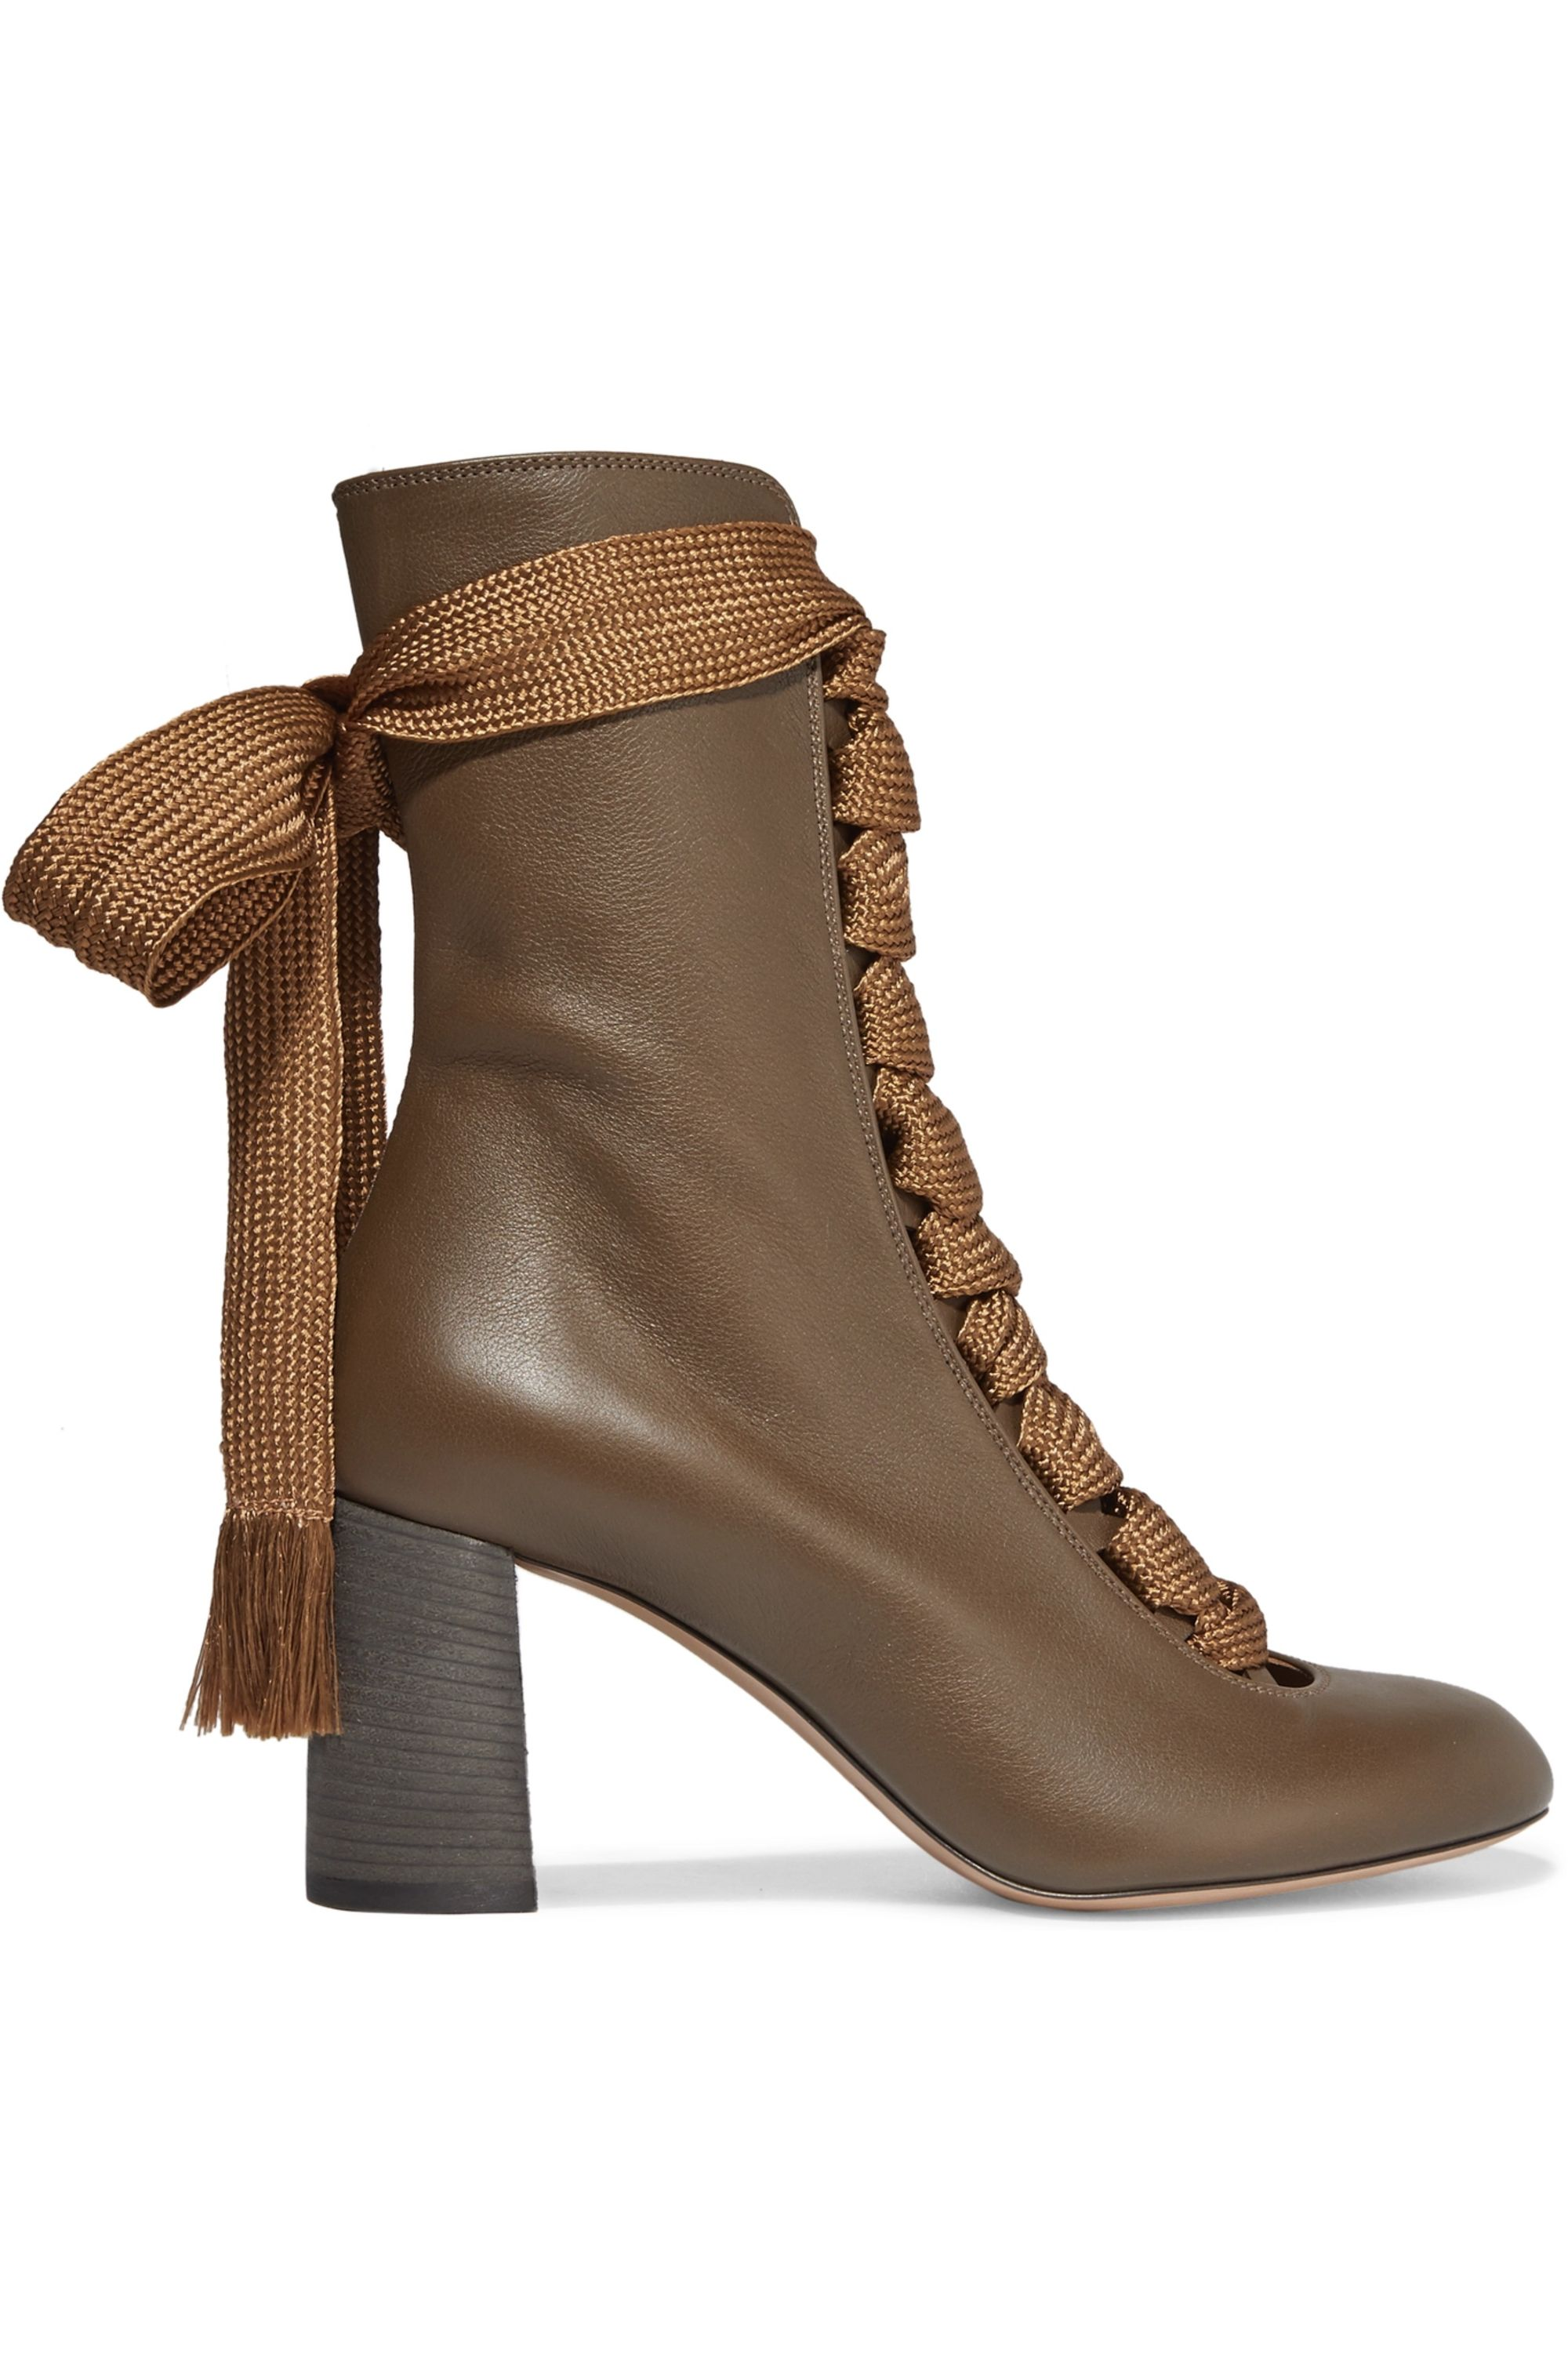 Chloé Harper textured-leather ankle boots